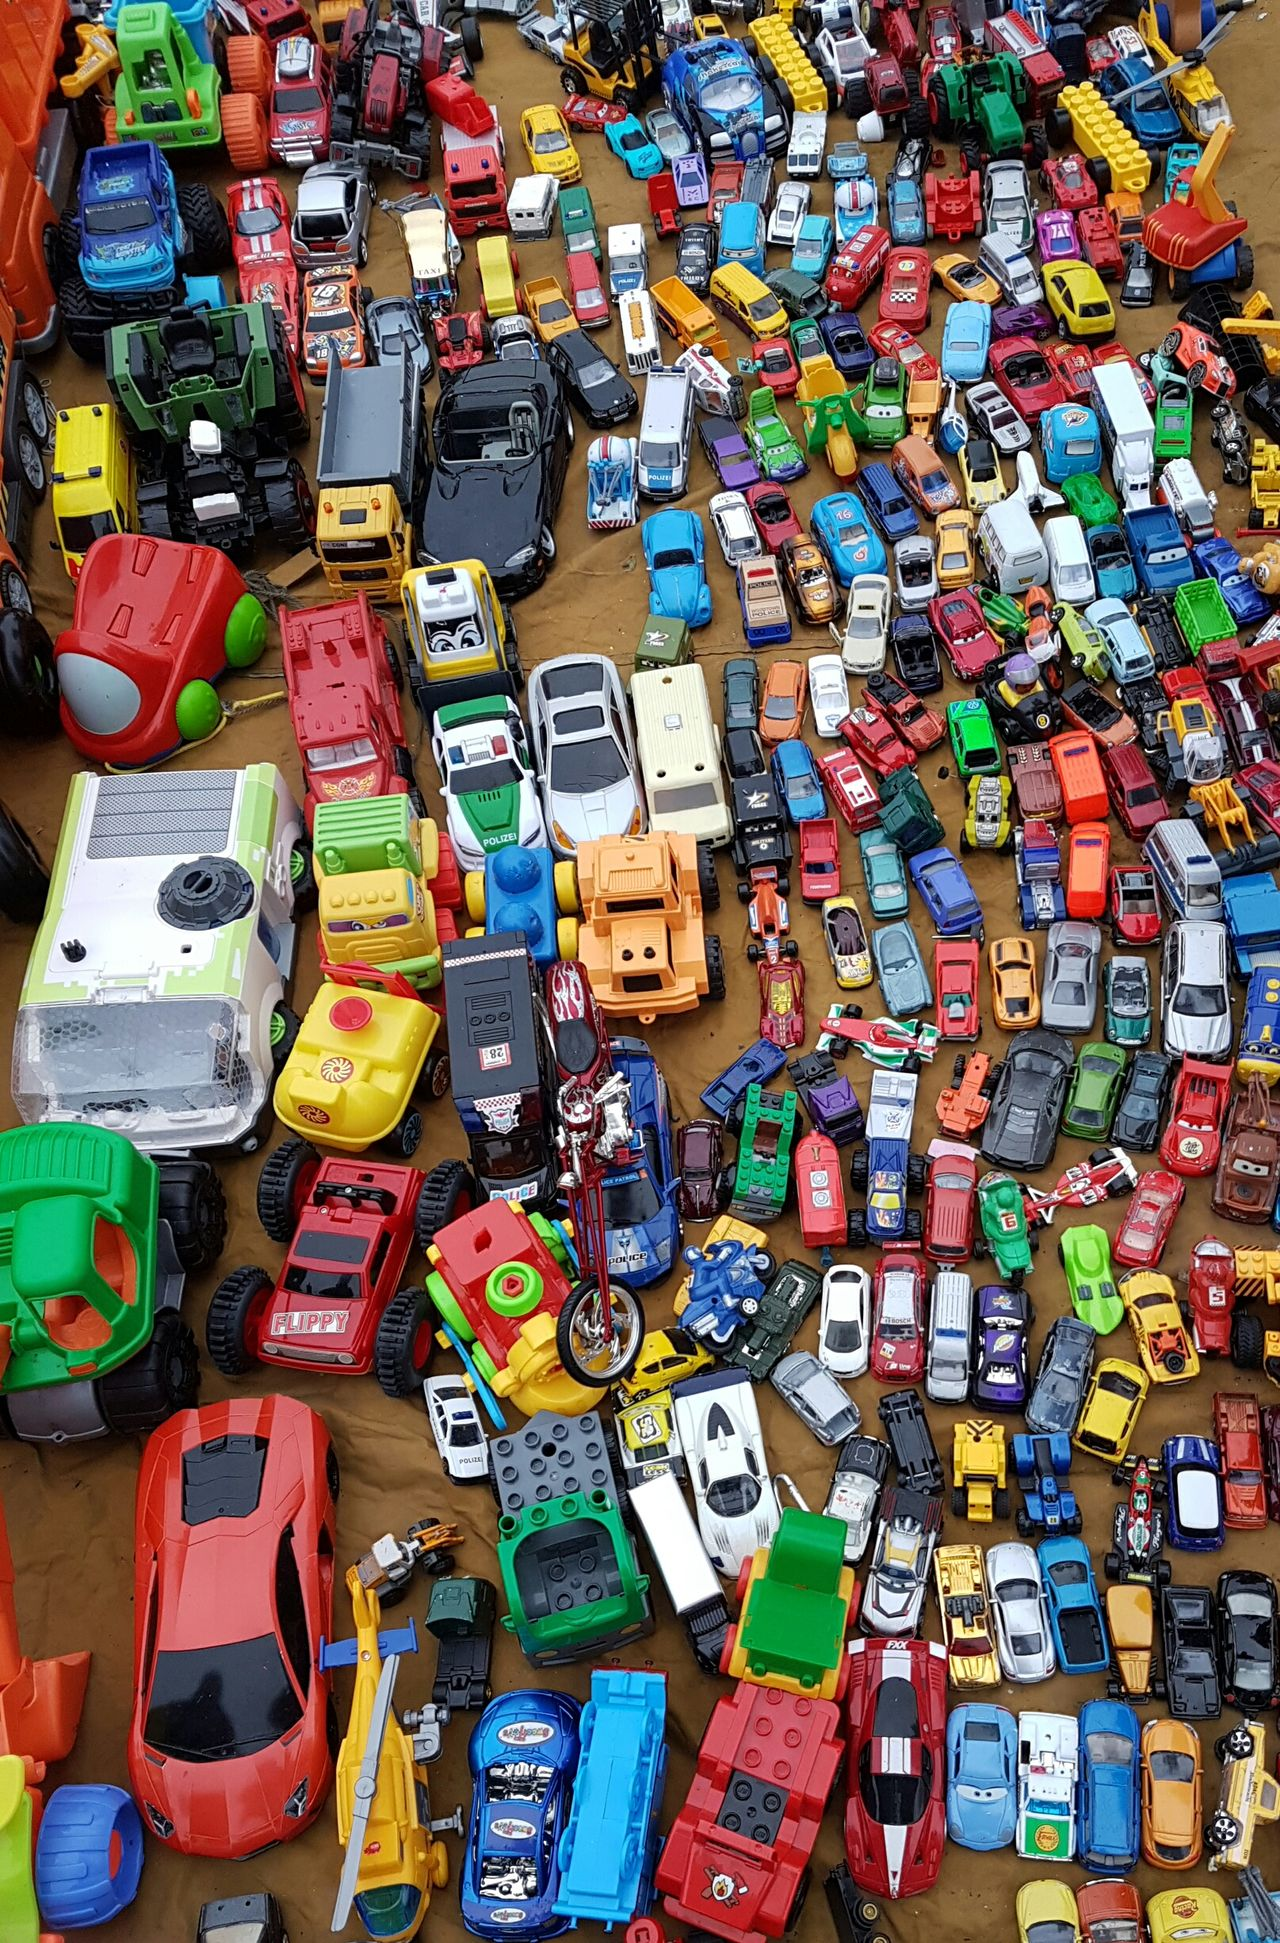 Market Fleamarket Flea Markets Fleamarkets Flea Market Second Hand Market Brocante Second Hand Cover Background Toys Old Toy Old Toys Car Toy Car Toys Toy Car Toy Cars Toy Car Collection For Sale